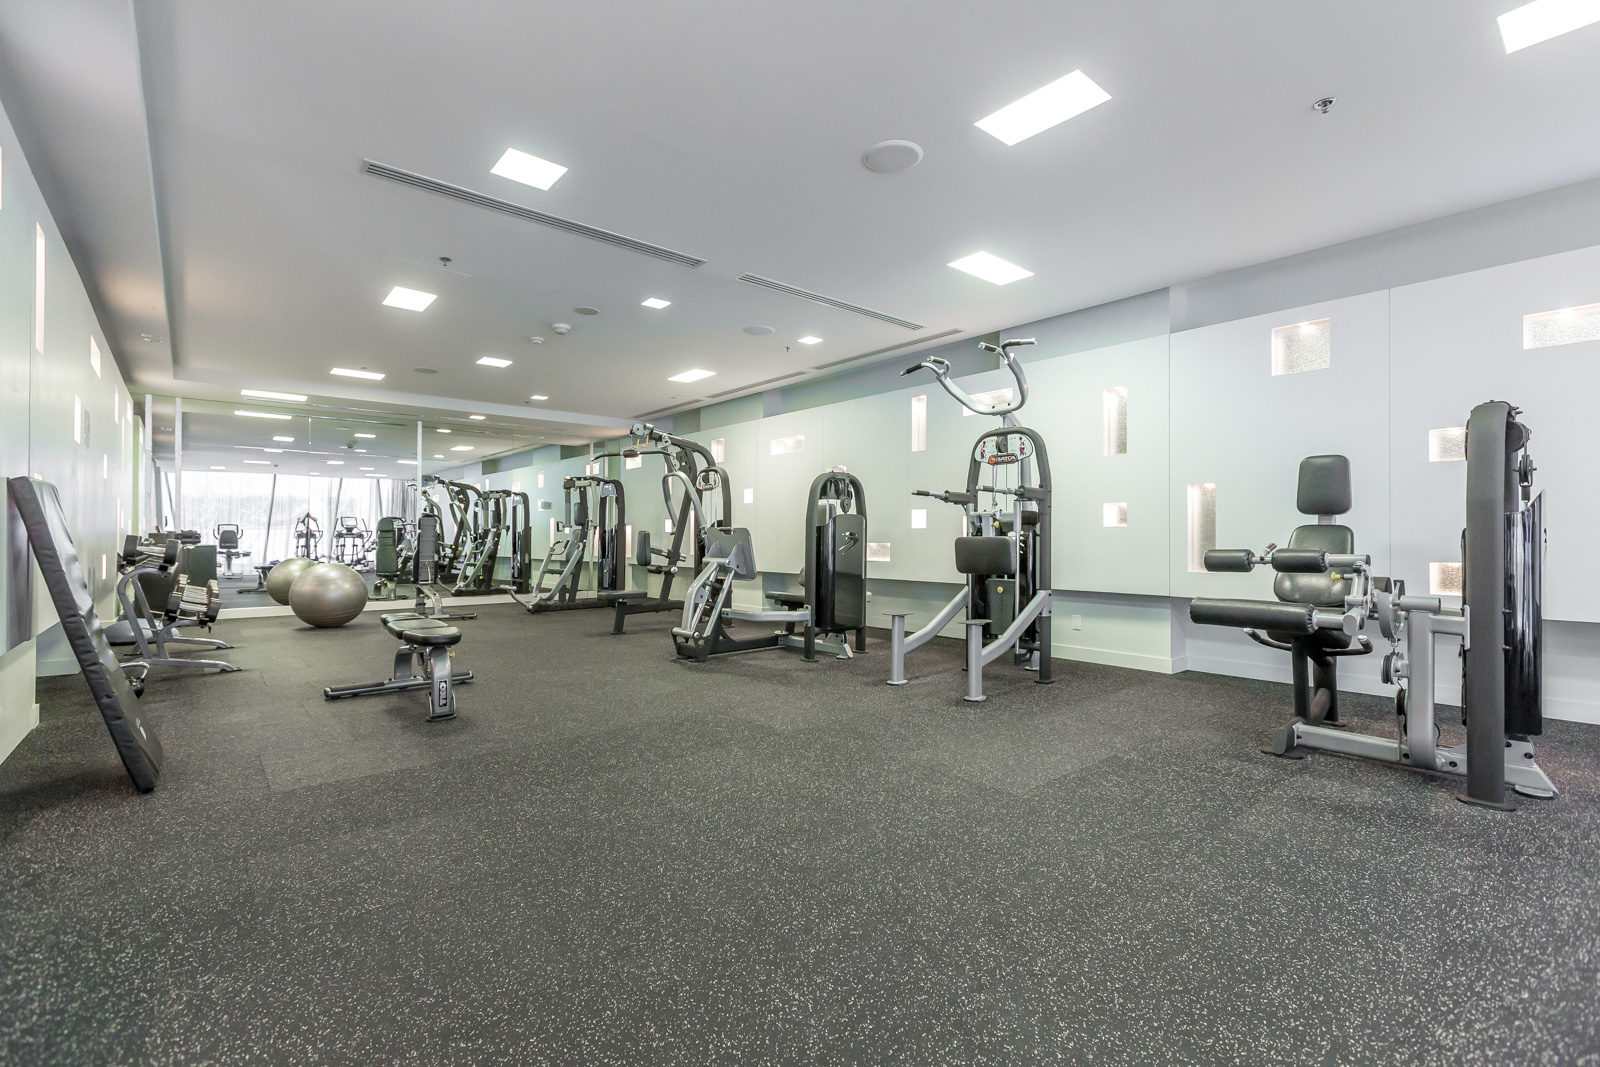 Photo of condo's fitness centre. Picture shows so many pieces of equipment. The space is rather large.